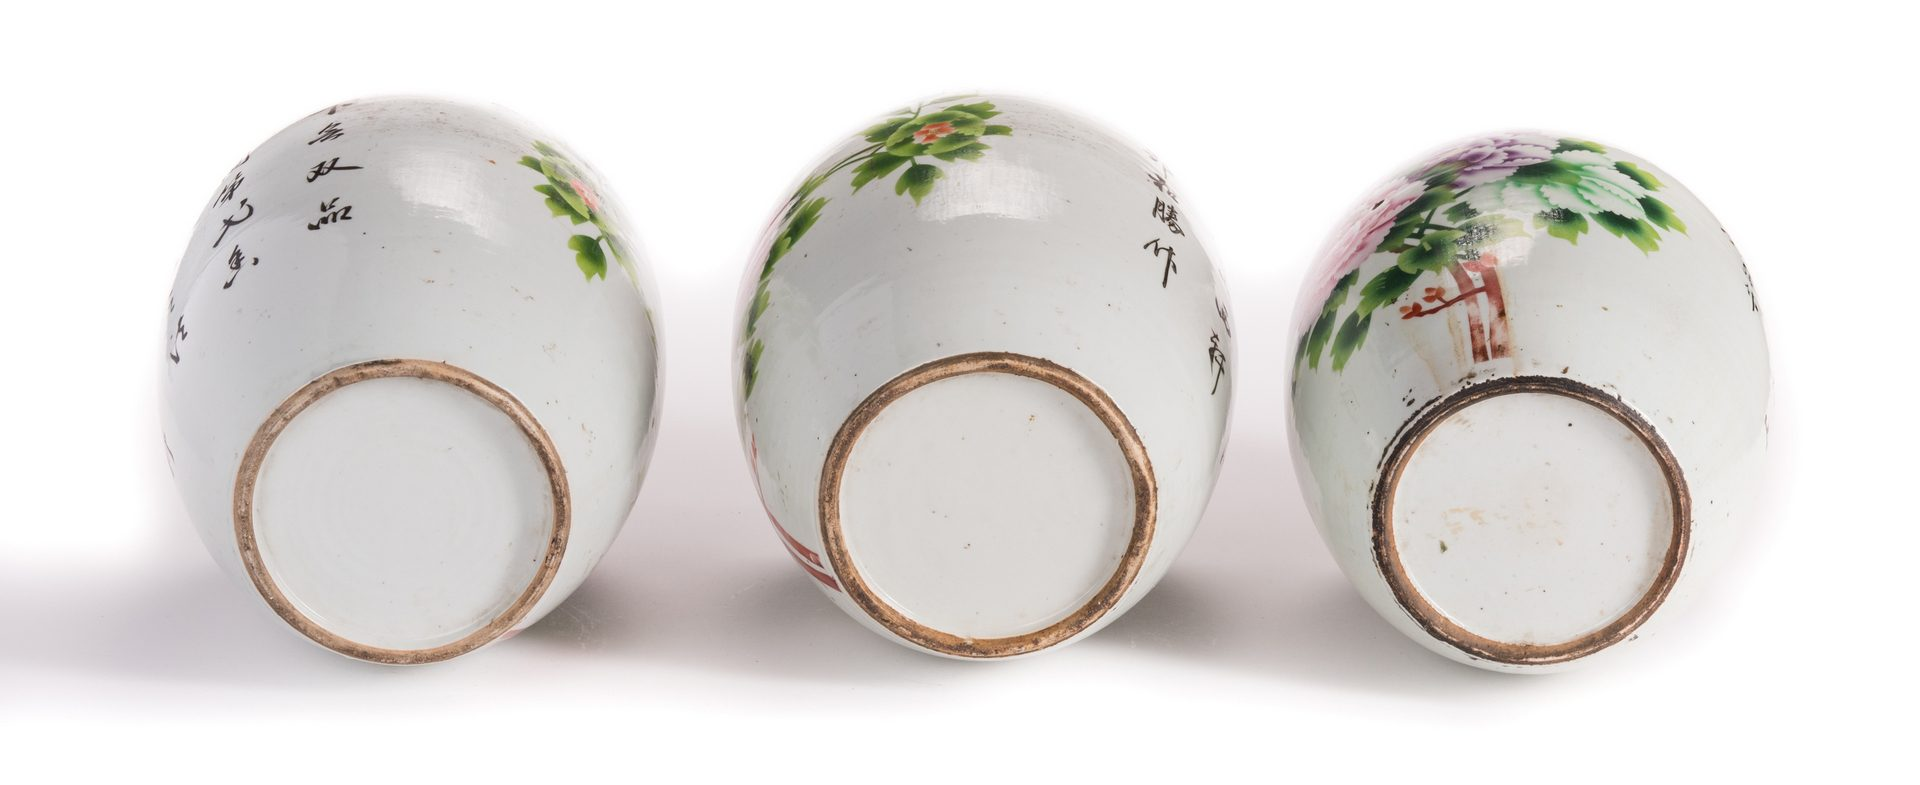 Lot 145: 3 Chinese Porcelain Ginger Jars w/Peonies